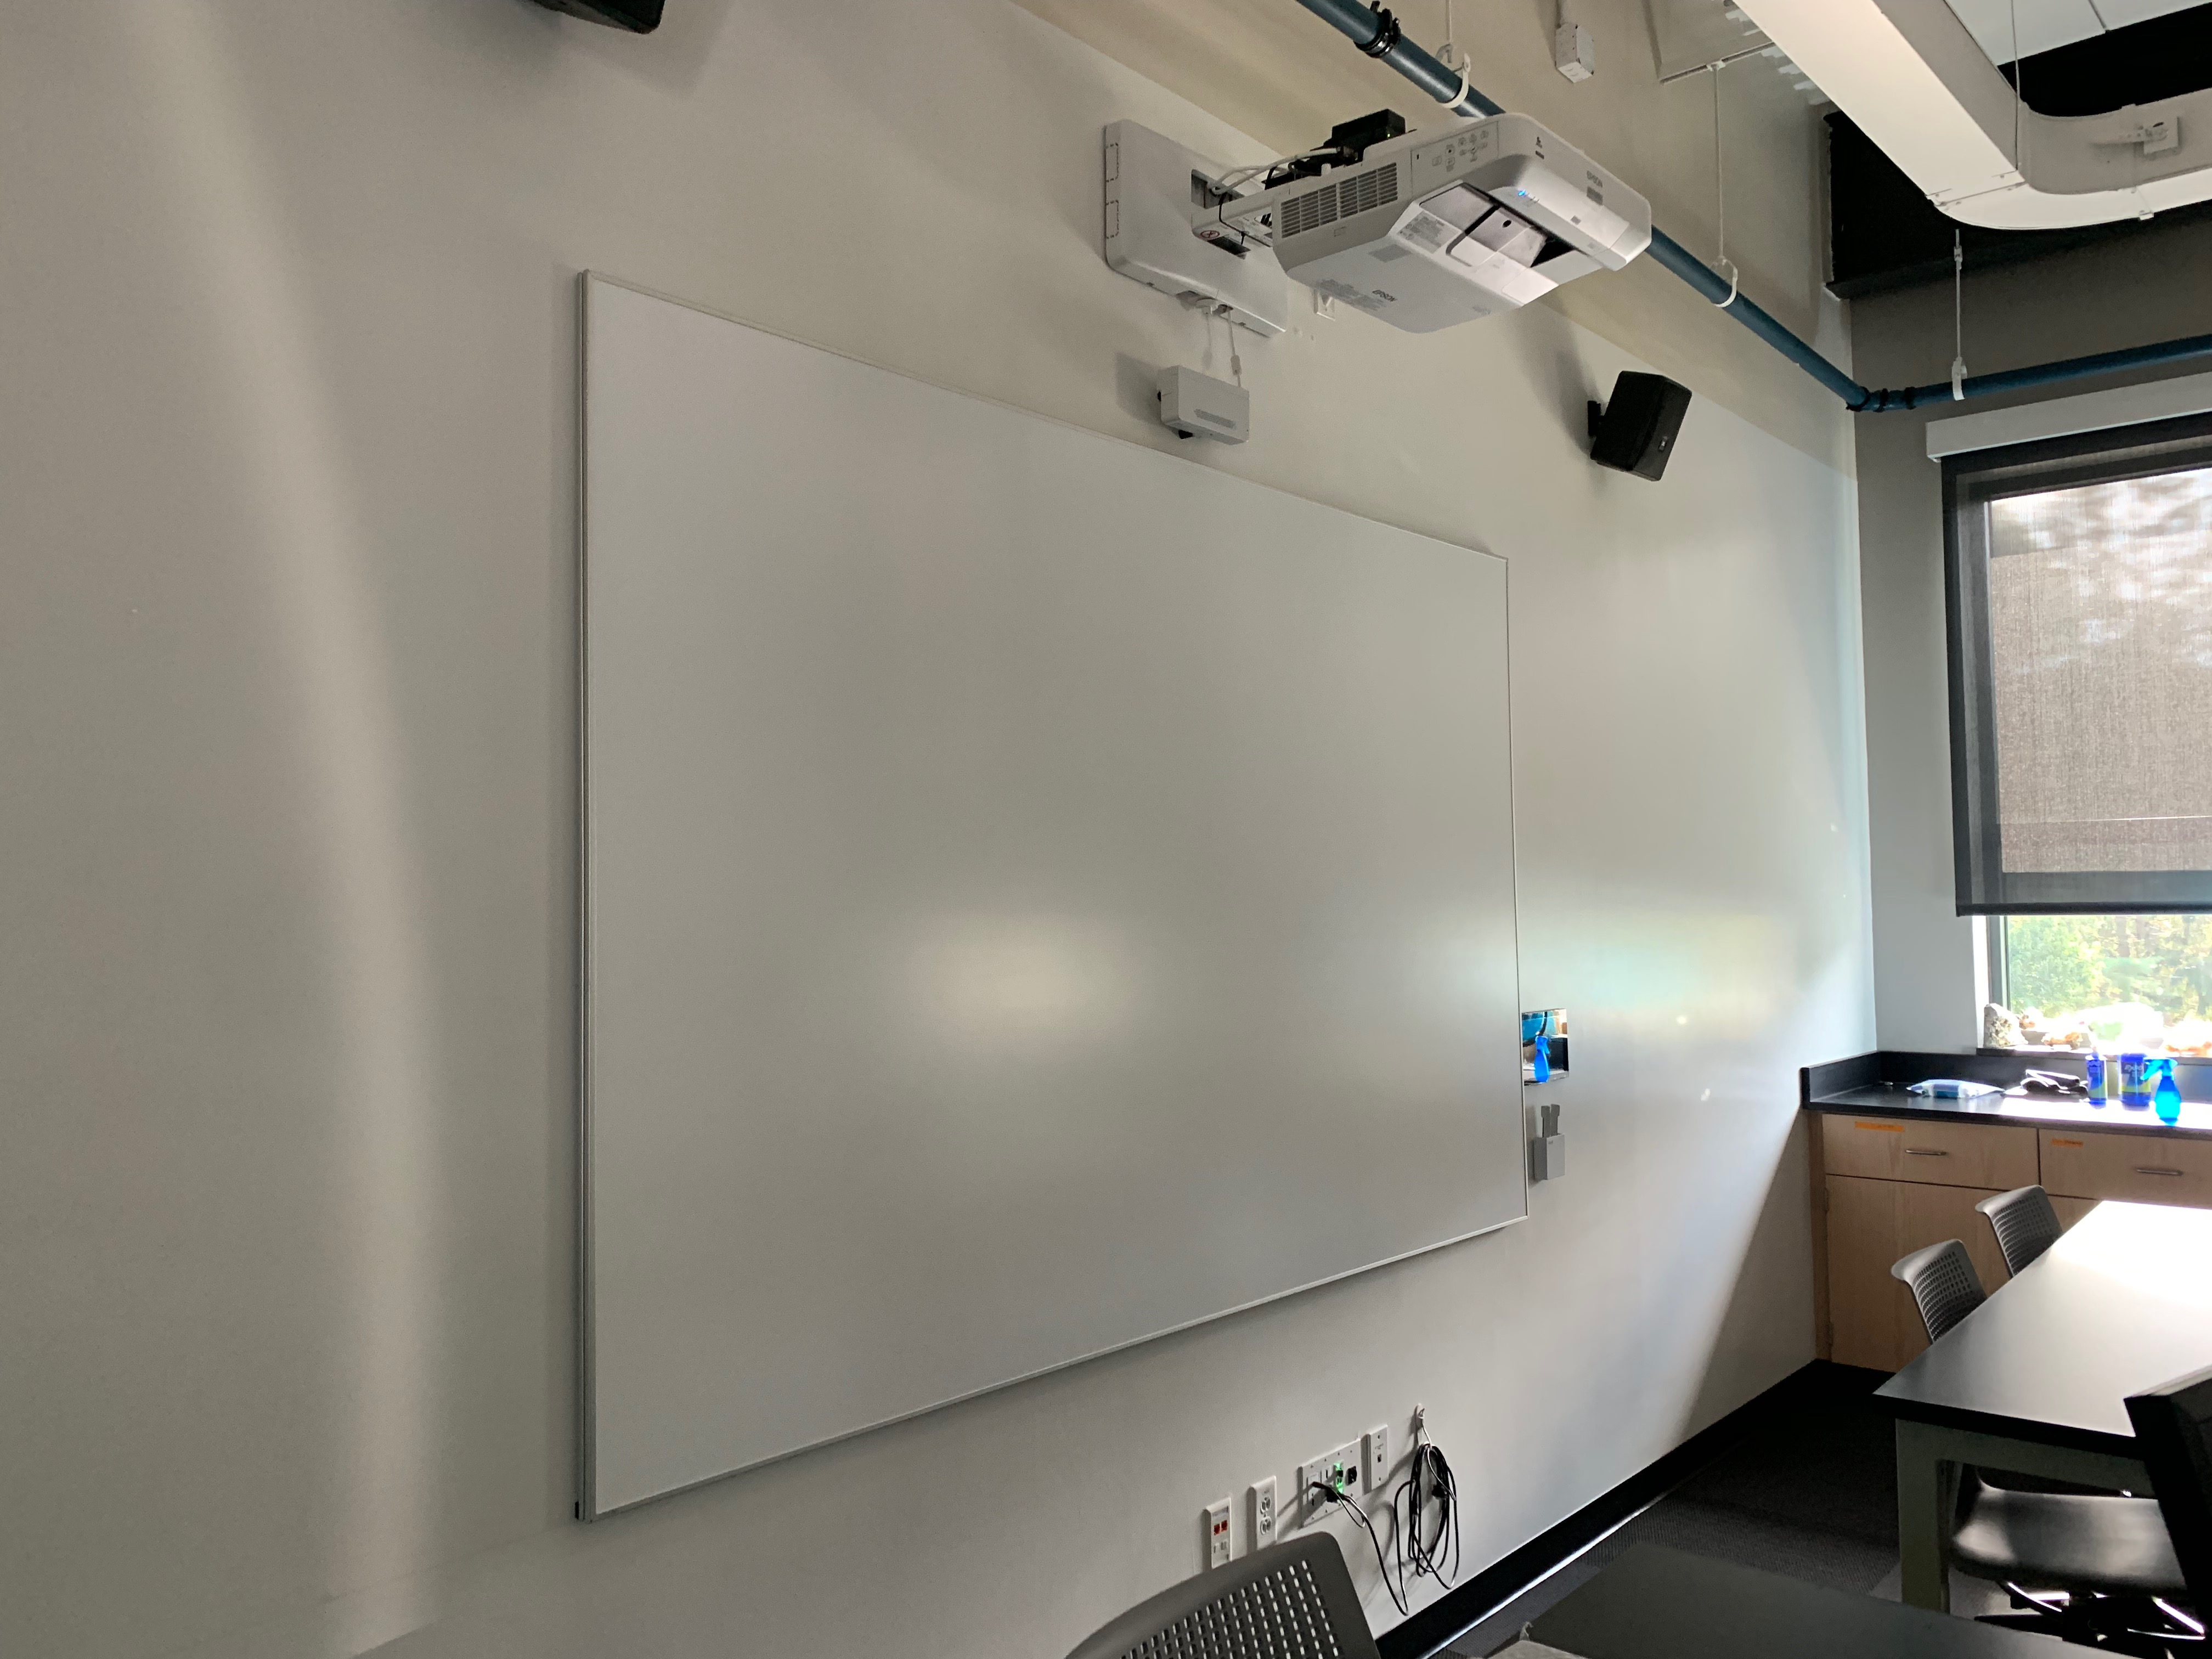 Roux 303 looking at the whiteboard wall and projection surface with interactive projector